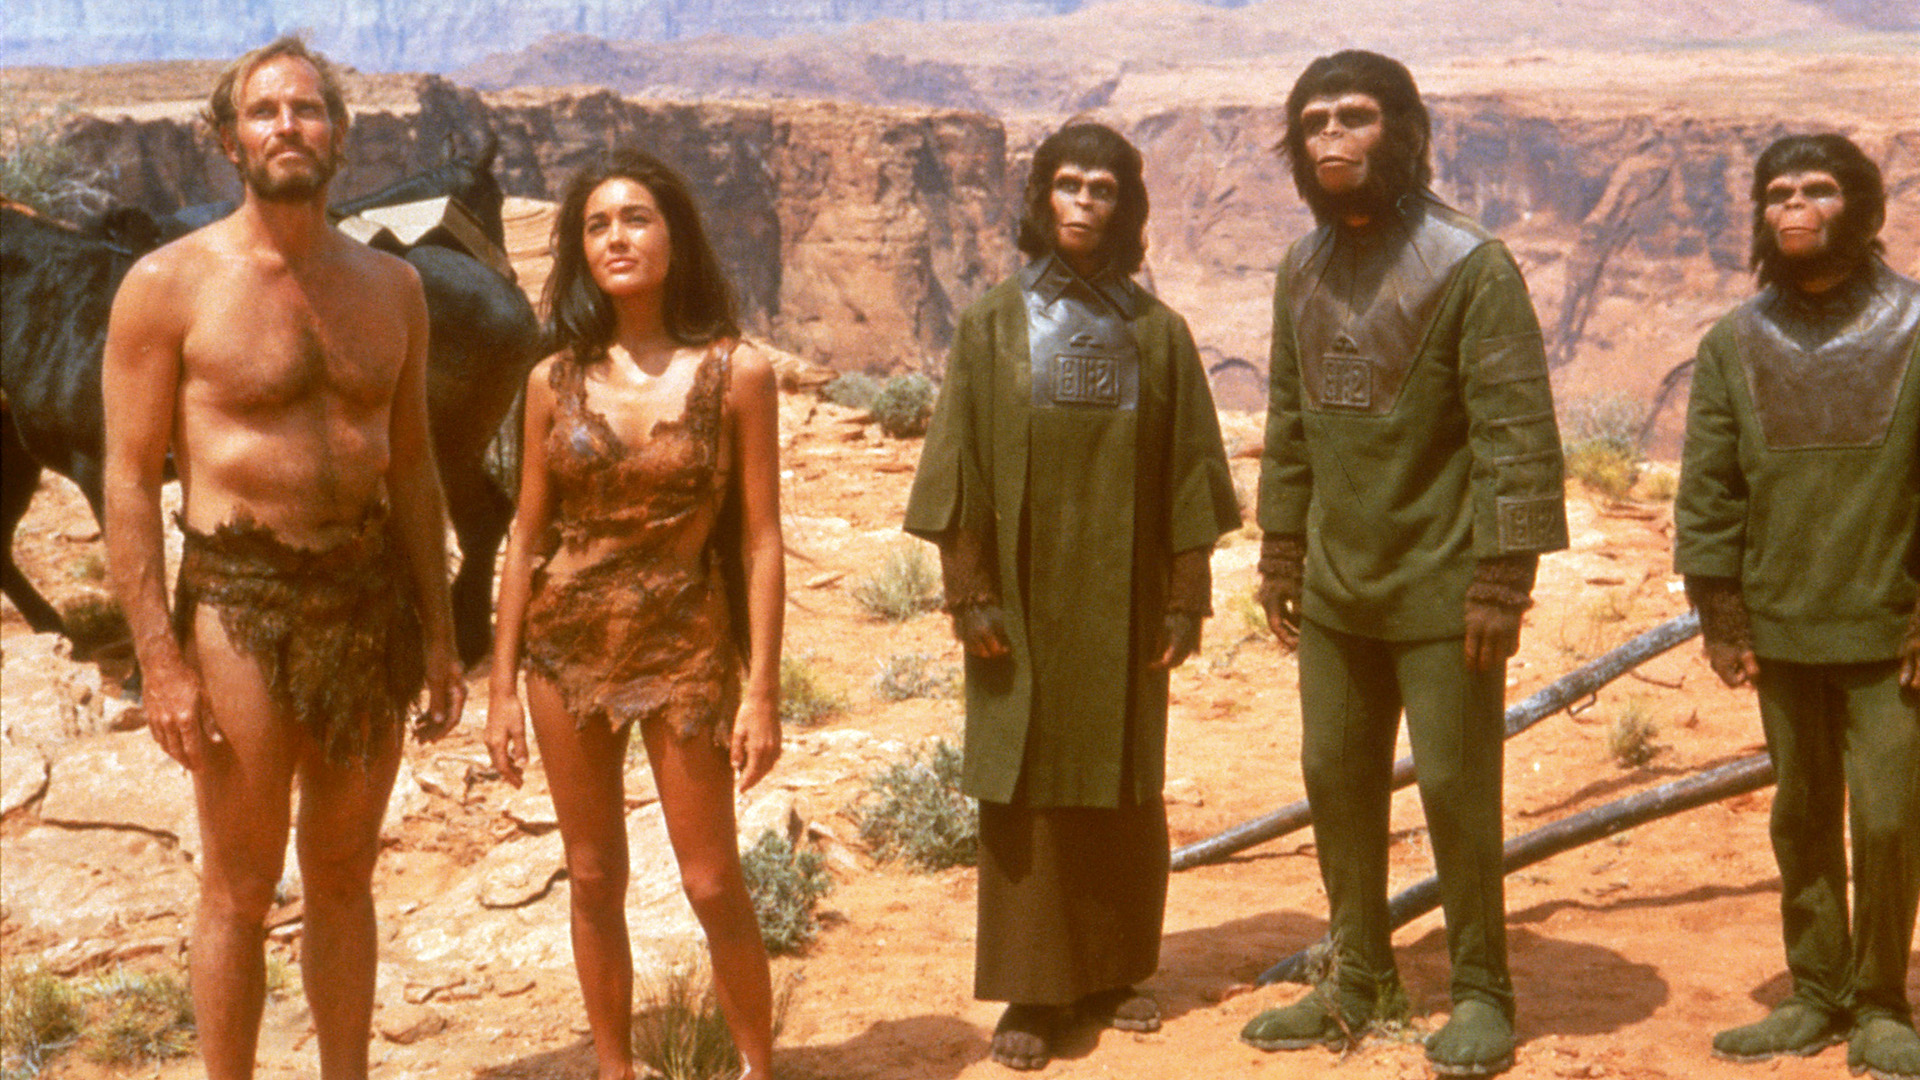 Cast of the original Planet of the Apes